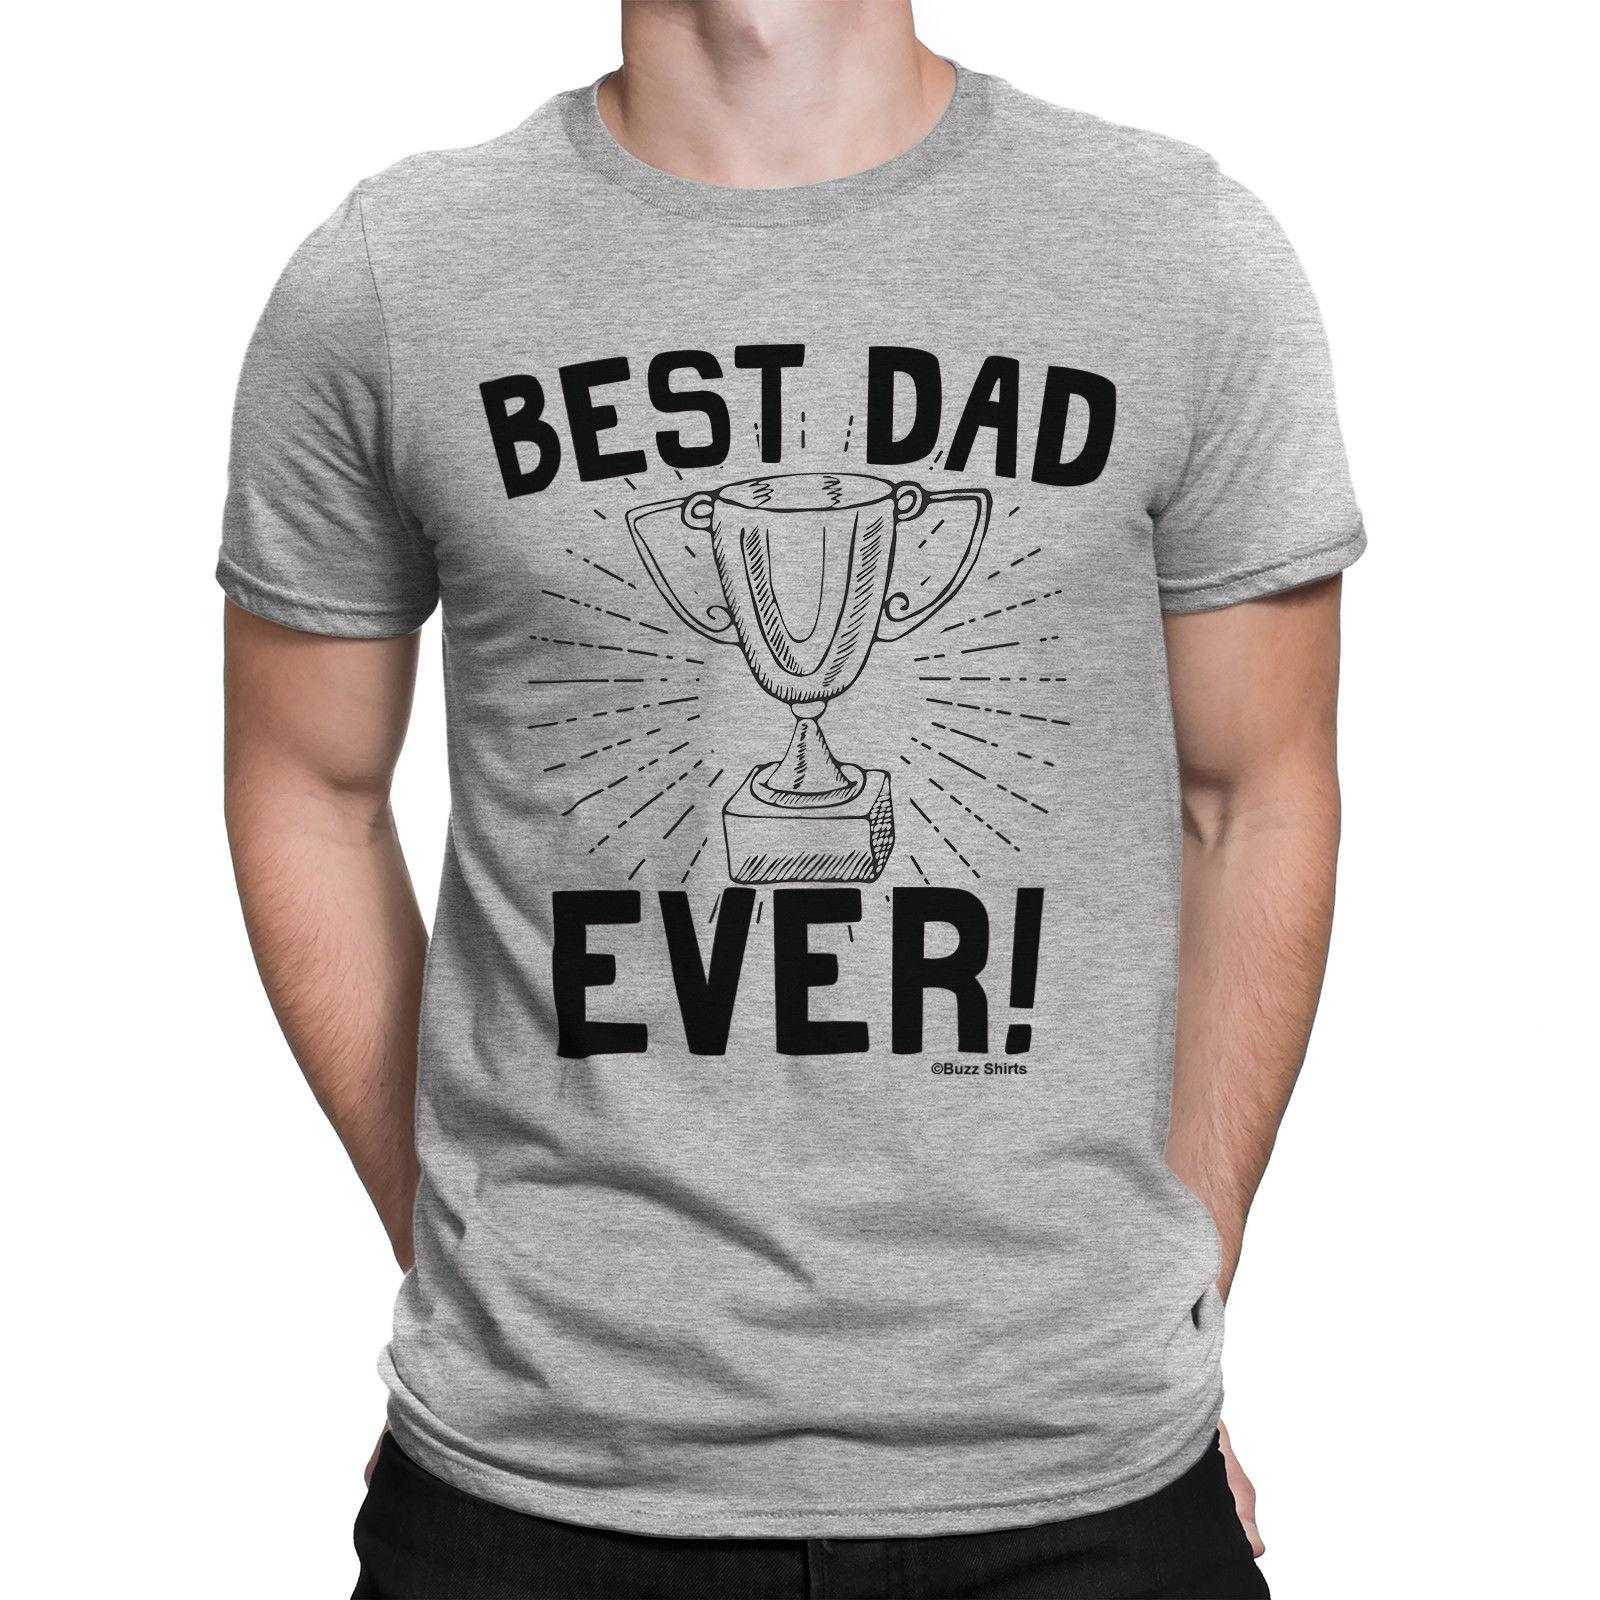 e360c995 Best Dad Ever Trophy Mens T Shirt Funny Gift Birthday Fathers Day Daddy  High Quality Custom Printed Tops Hipster Tees T Shirt Fun Tee Shirt Shop  Online T ...